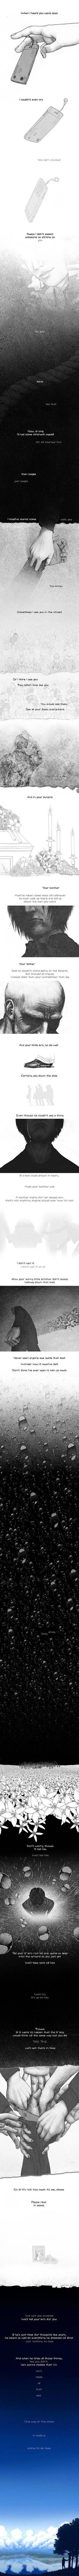 """""""Your suicide."""" by linnyxito Pretty sad when I read this. Reminded me of Mike. Beautifully illustrated."""